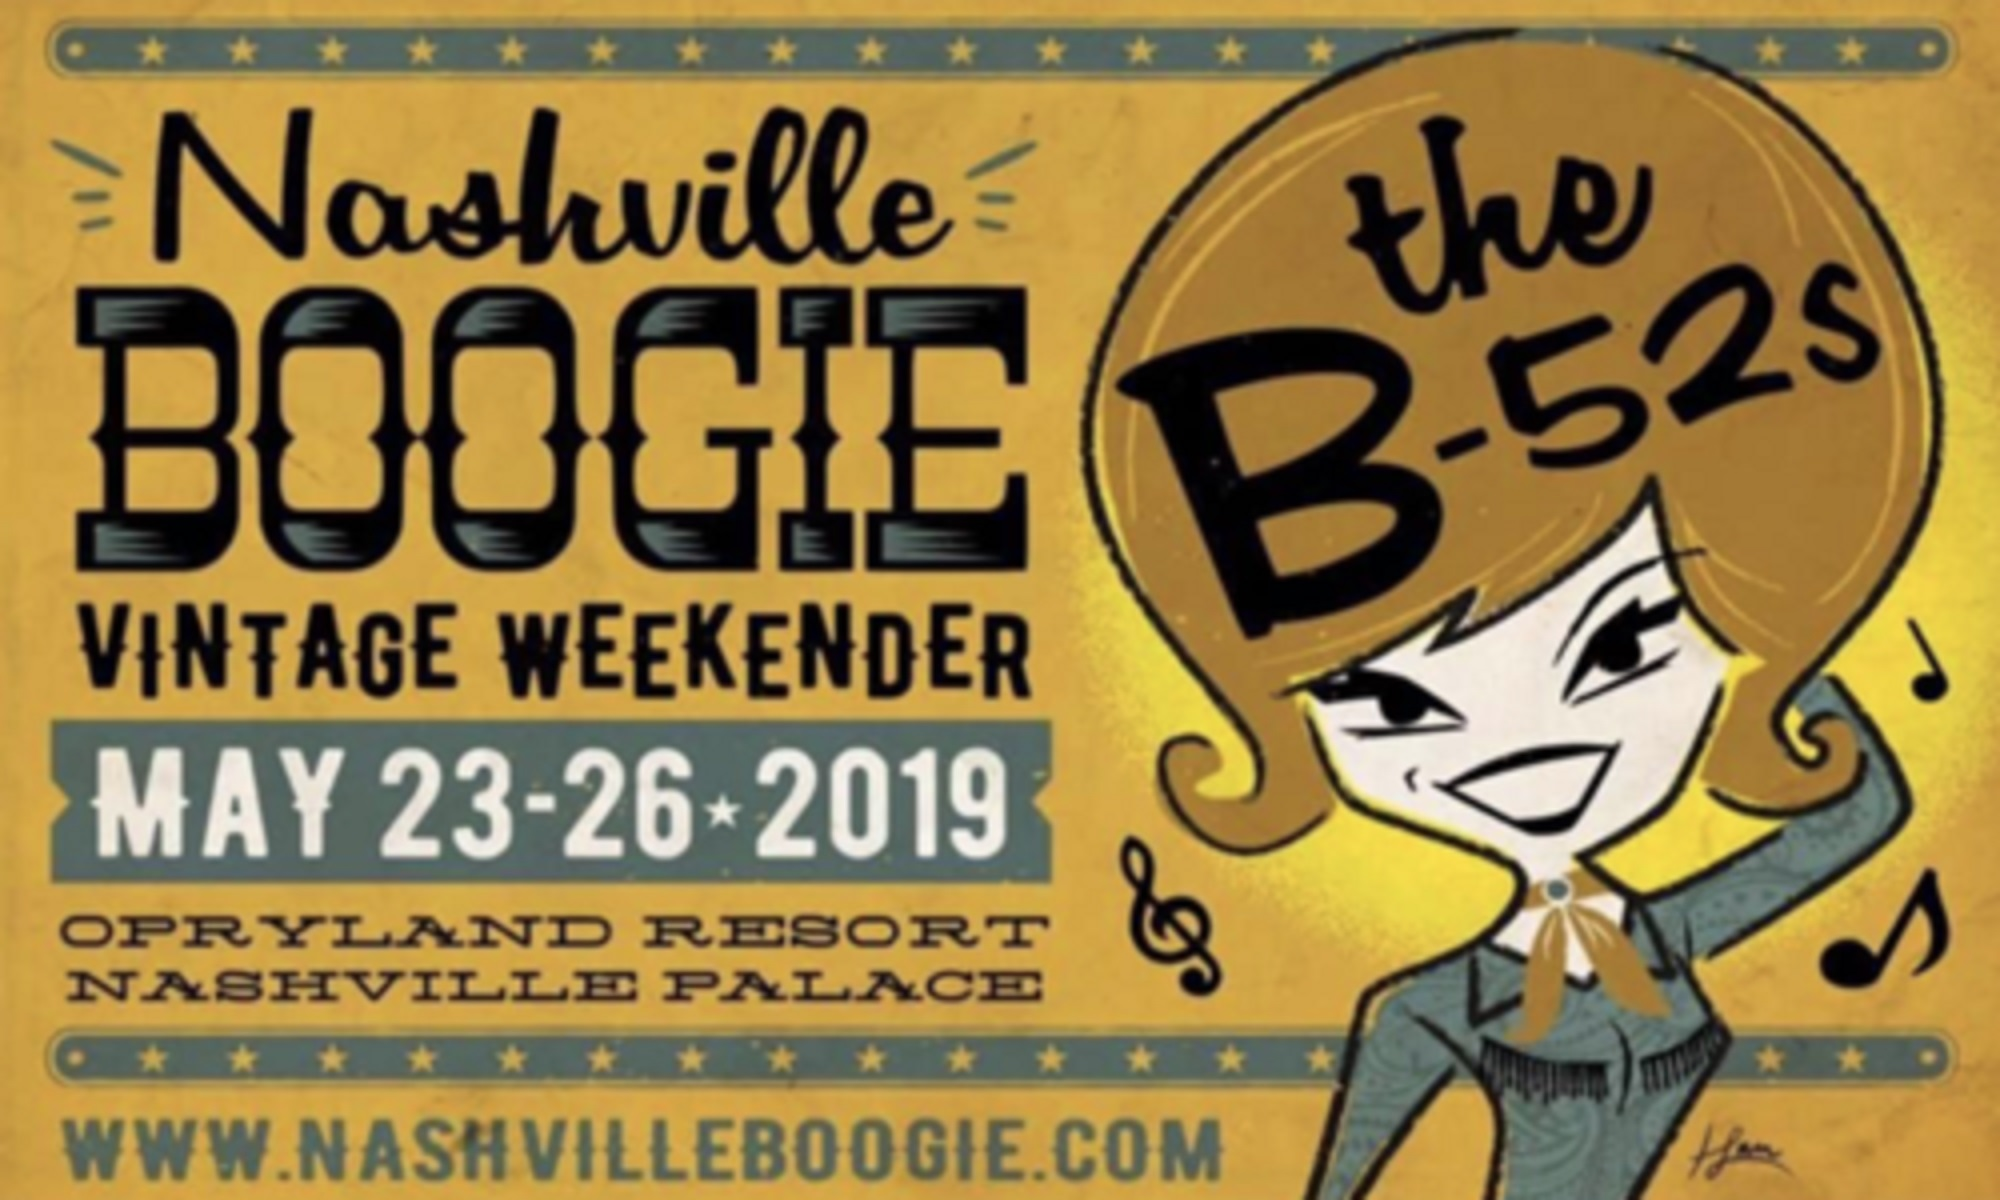 The B-52s, Ronnie Spector & The Ronettes, & JD McPherson to headline 2019 Nashville Boogie Vintage Weekender